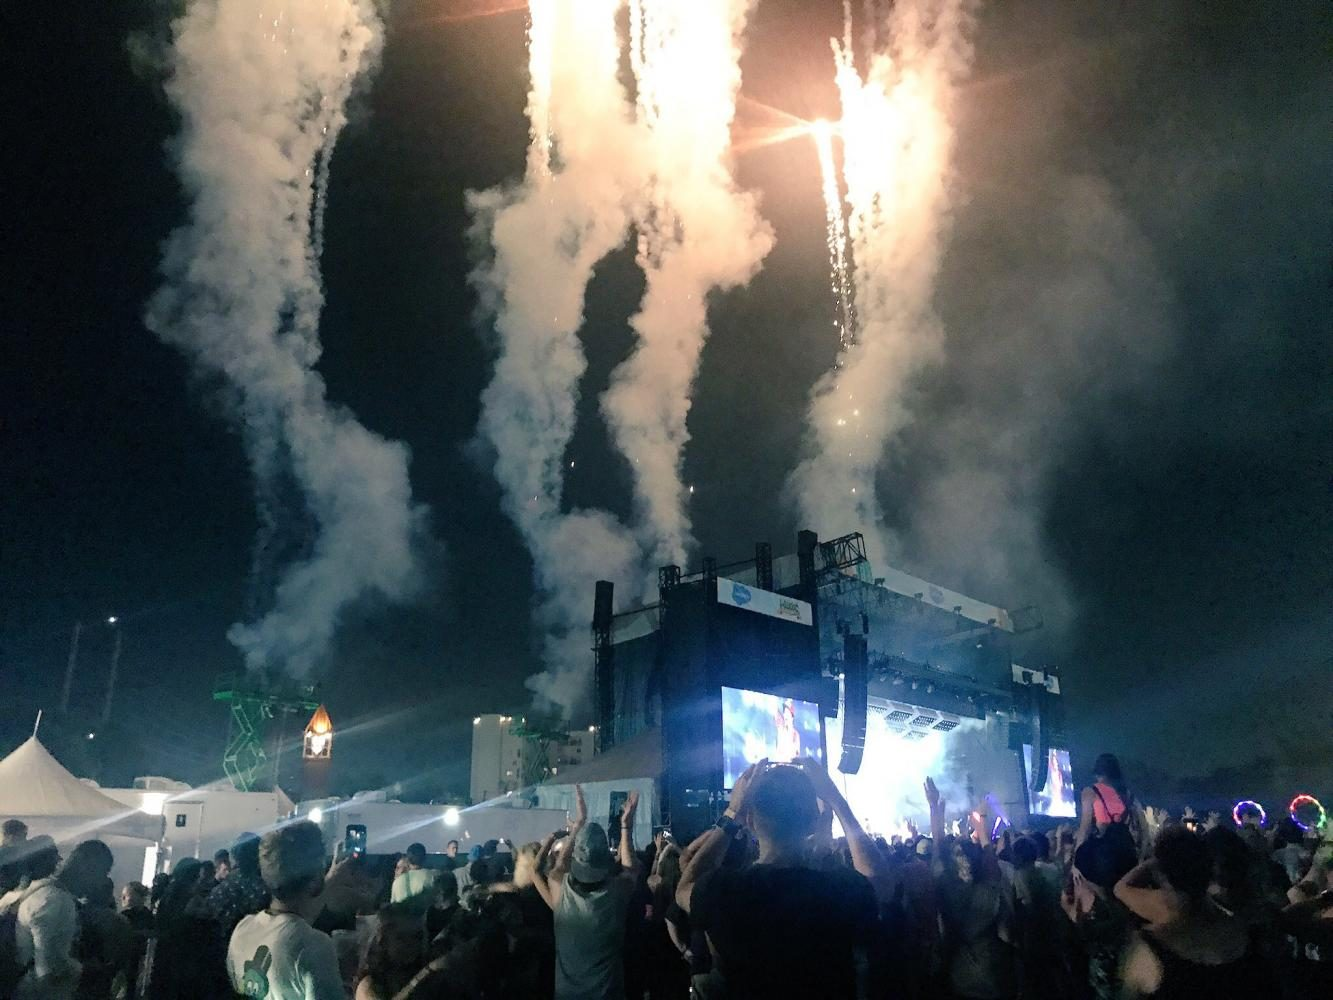 Bruno+Mars+sets+off+fireworks+on+the+Salesforce+stage+during+his+performance+on+Saturday+night.